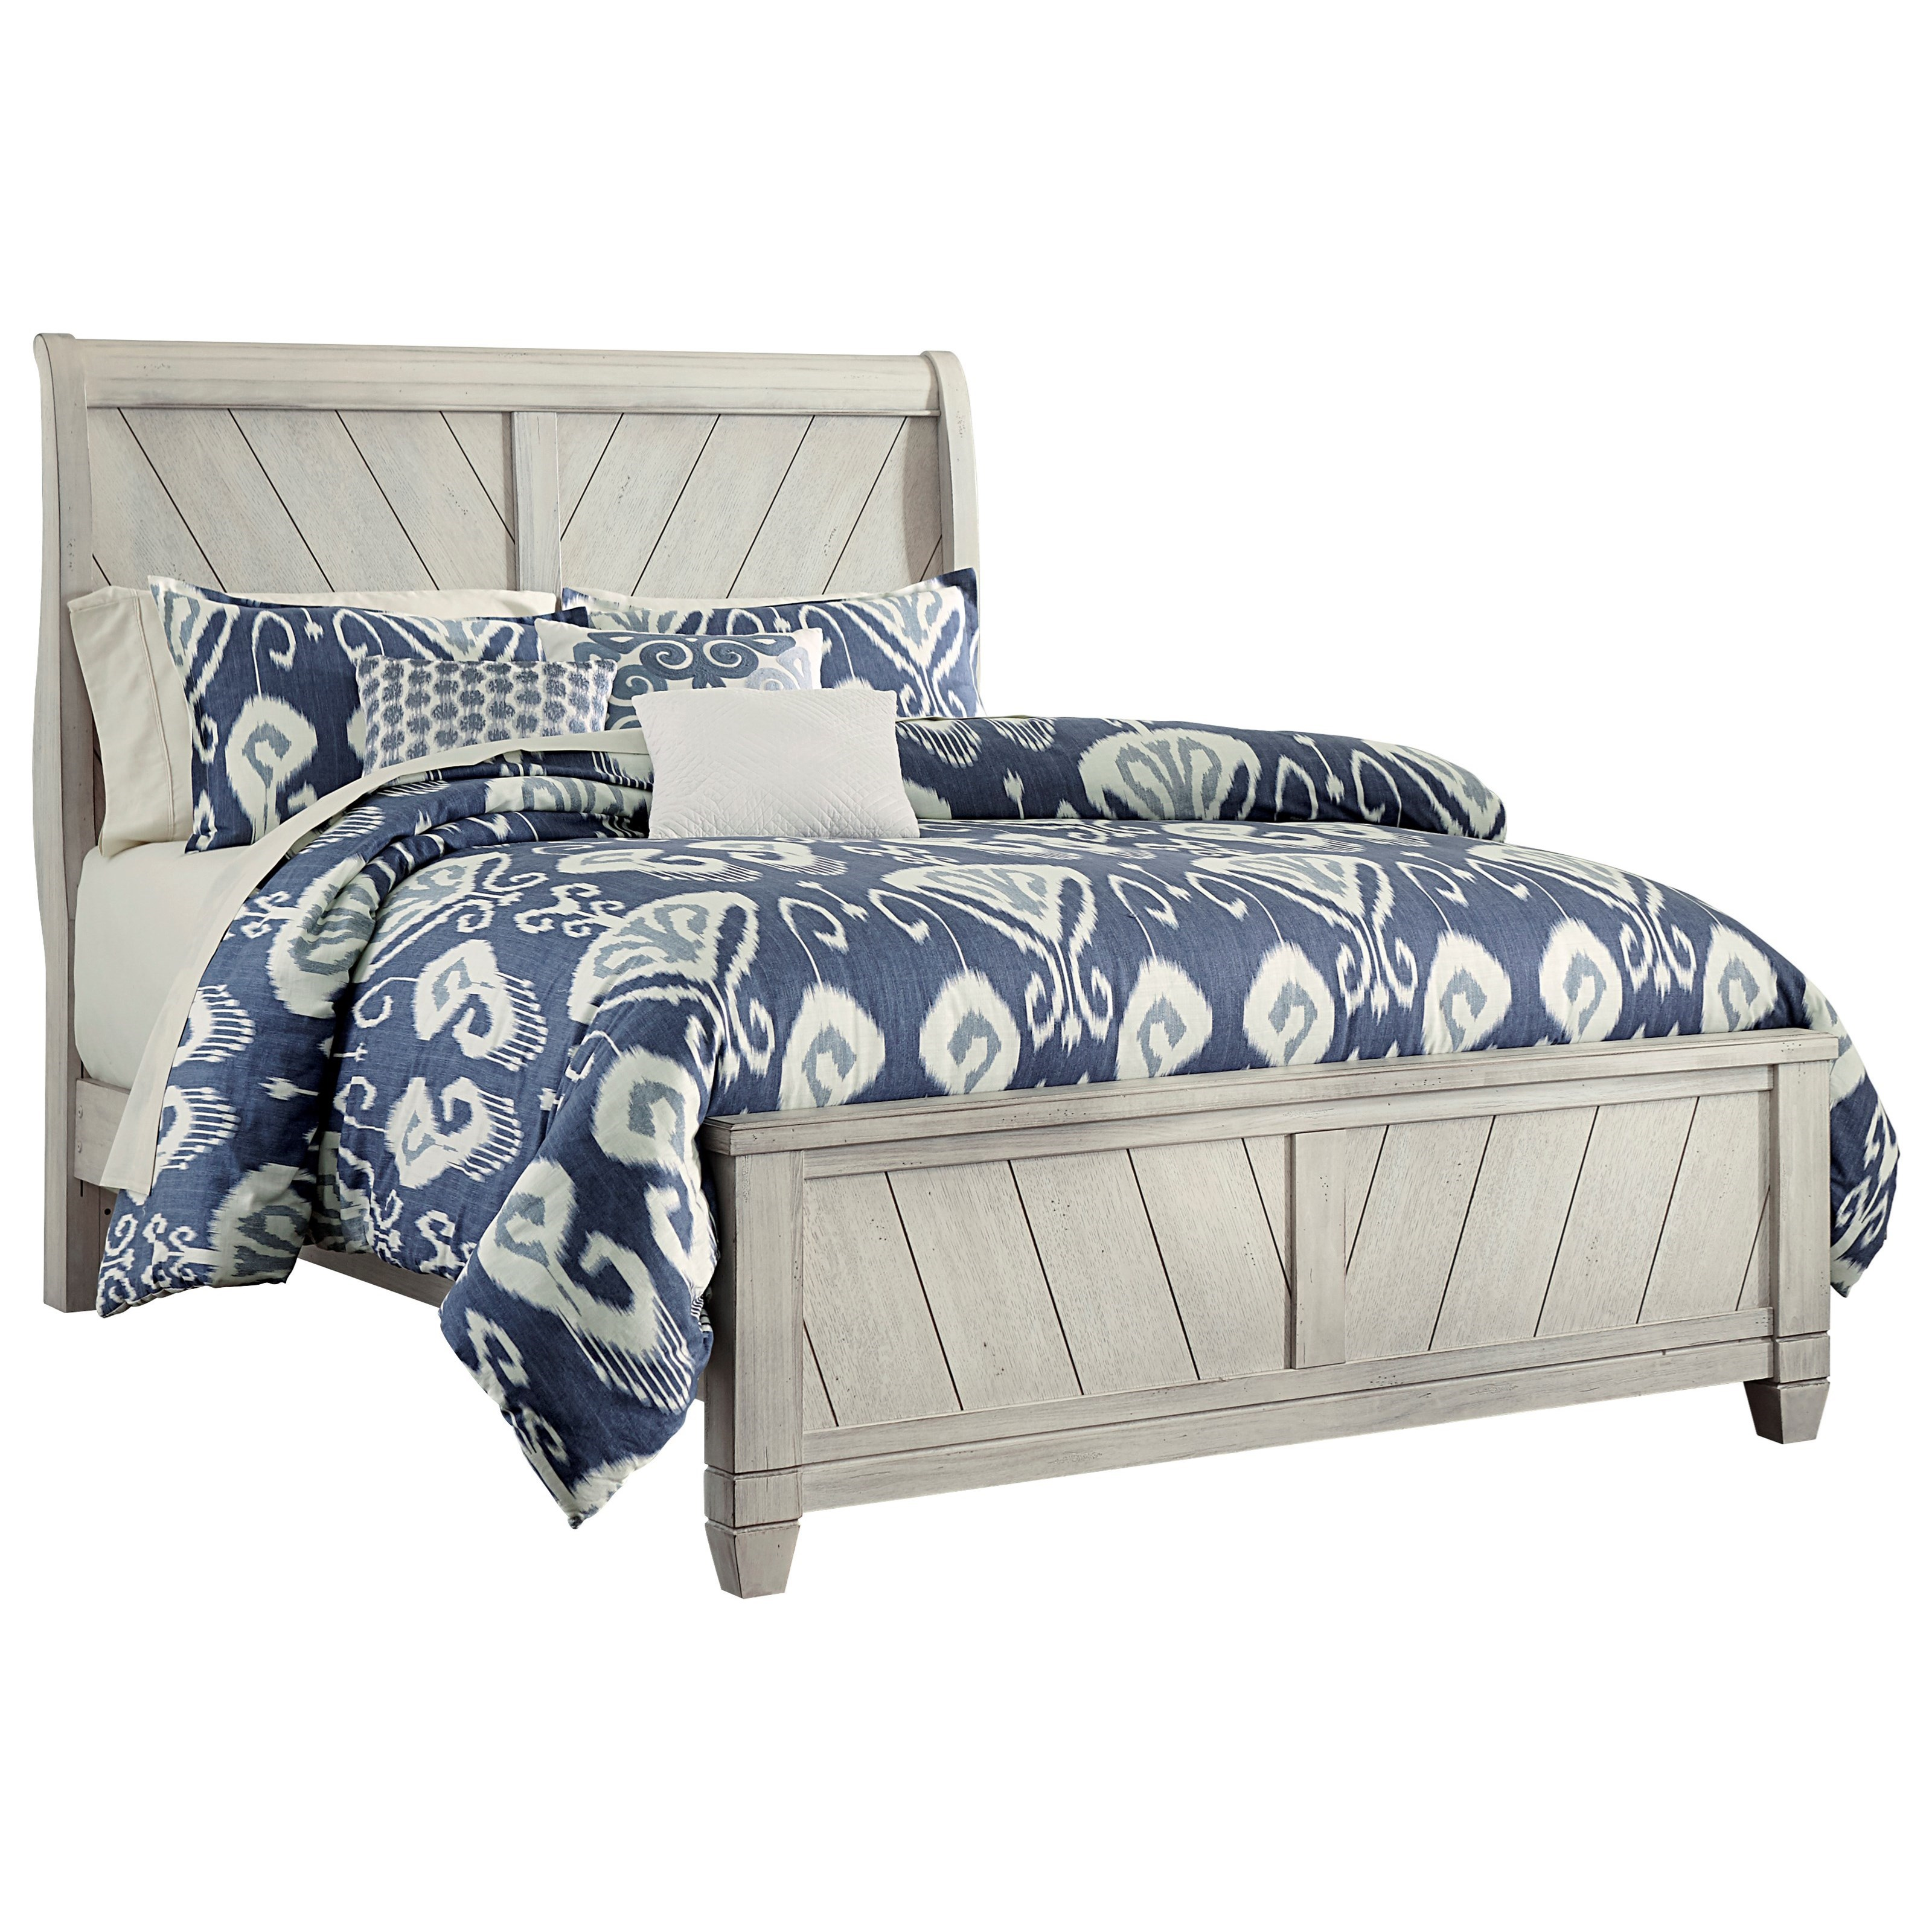 Vaughan Bassett Rustic Cottage King Sleigh Bed - Item Number: 644-663+866+922+MS2